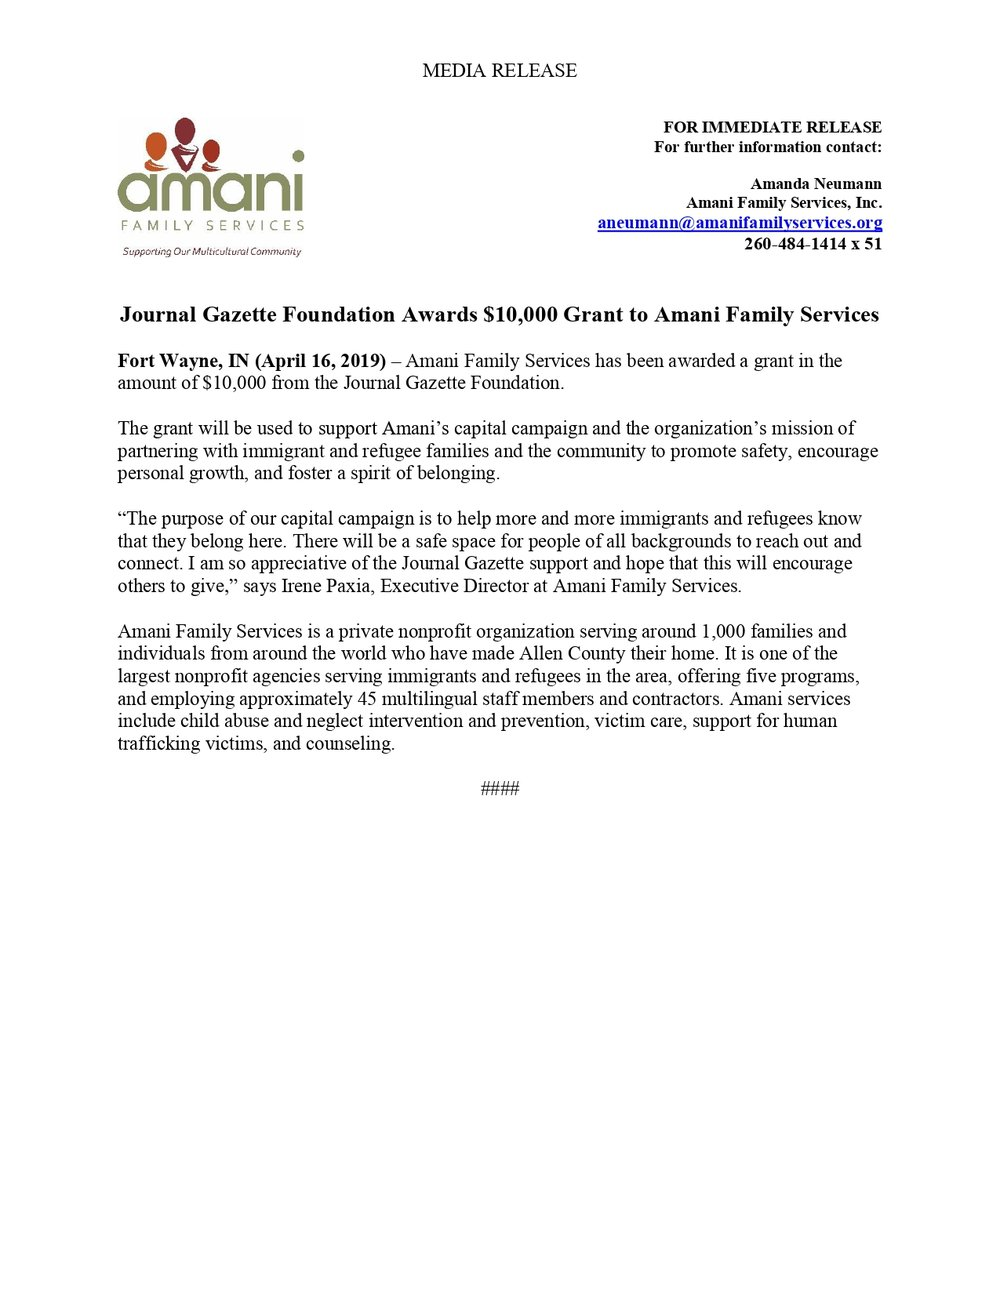 Journal Gazette Foundation 2019 Press Release - Amani Family Services_page-0001.jpg